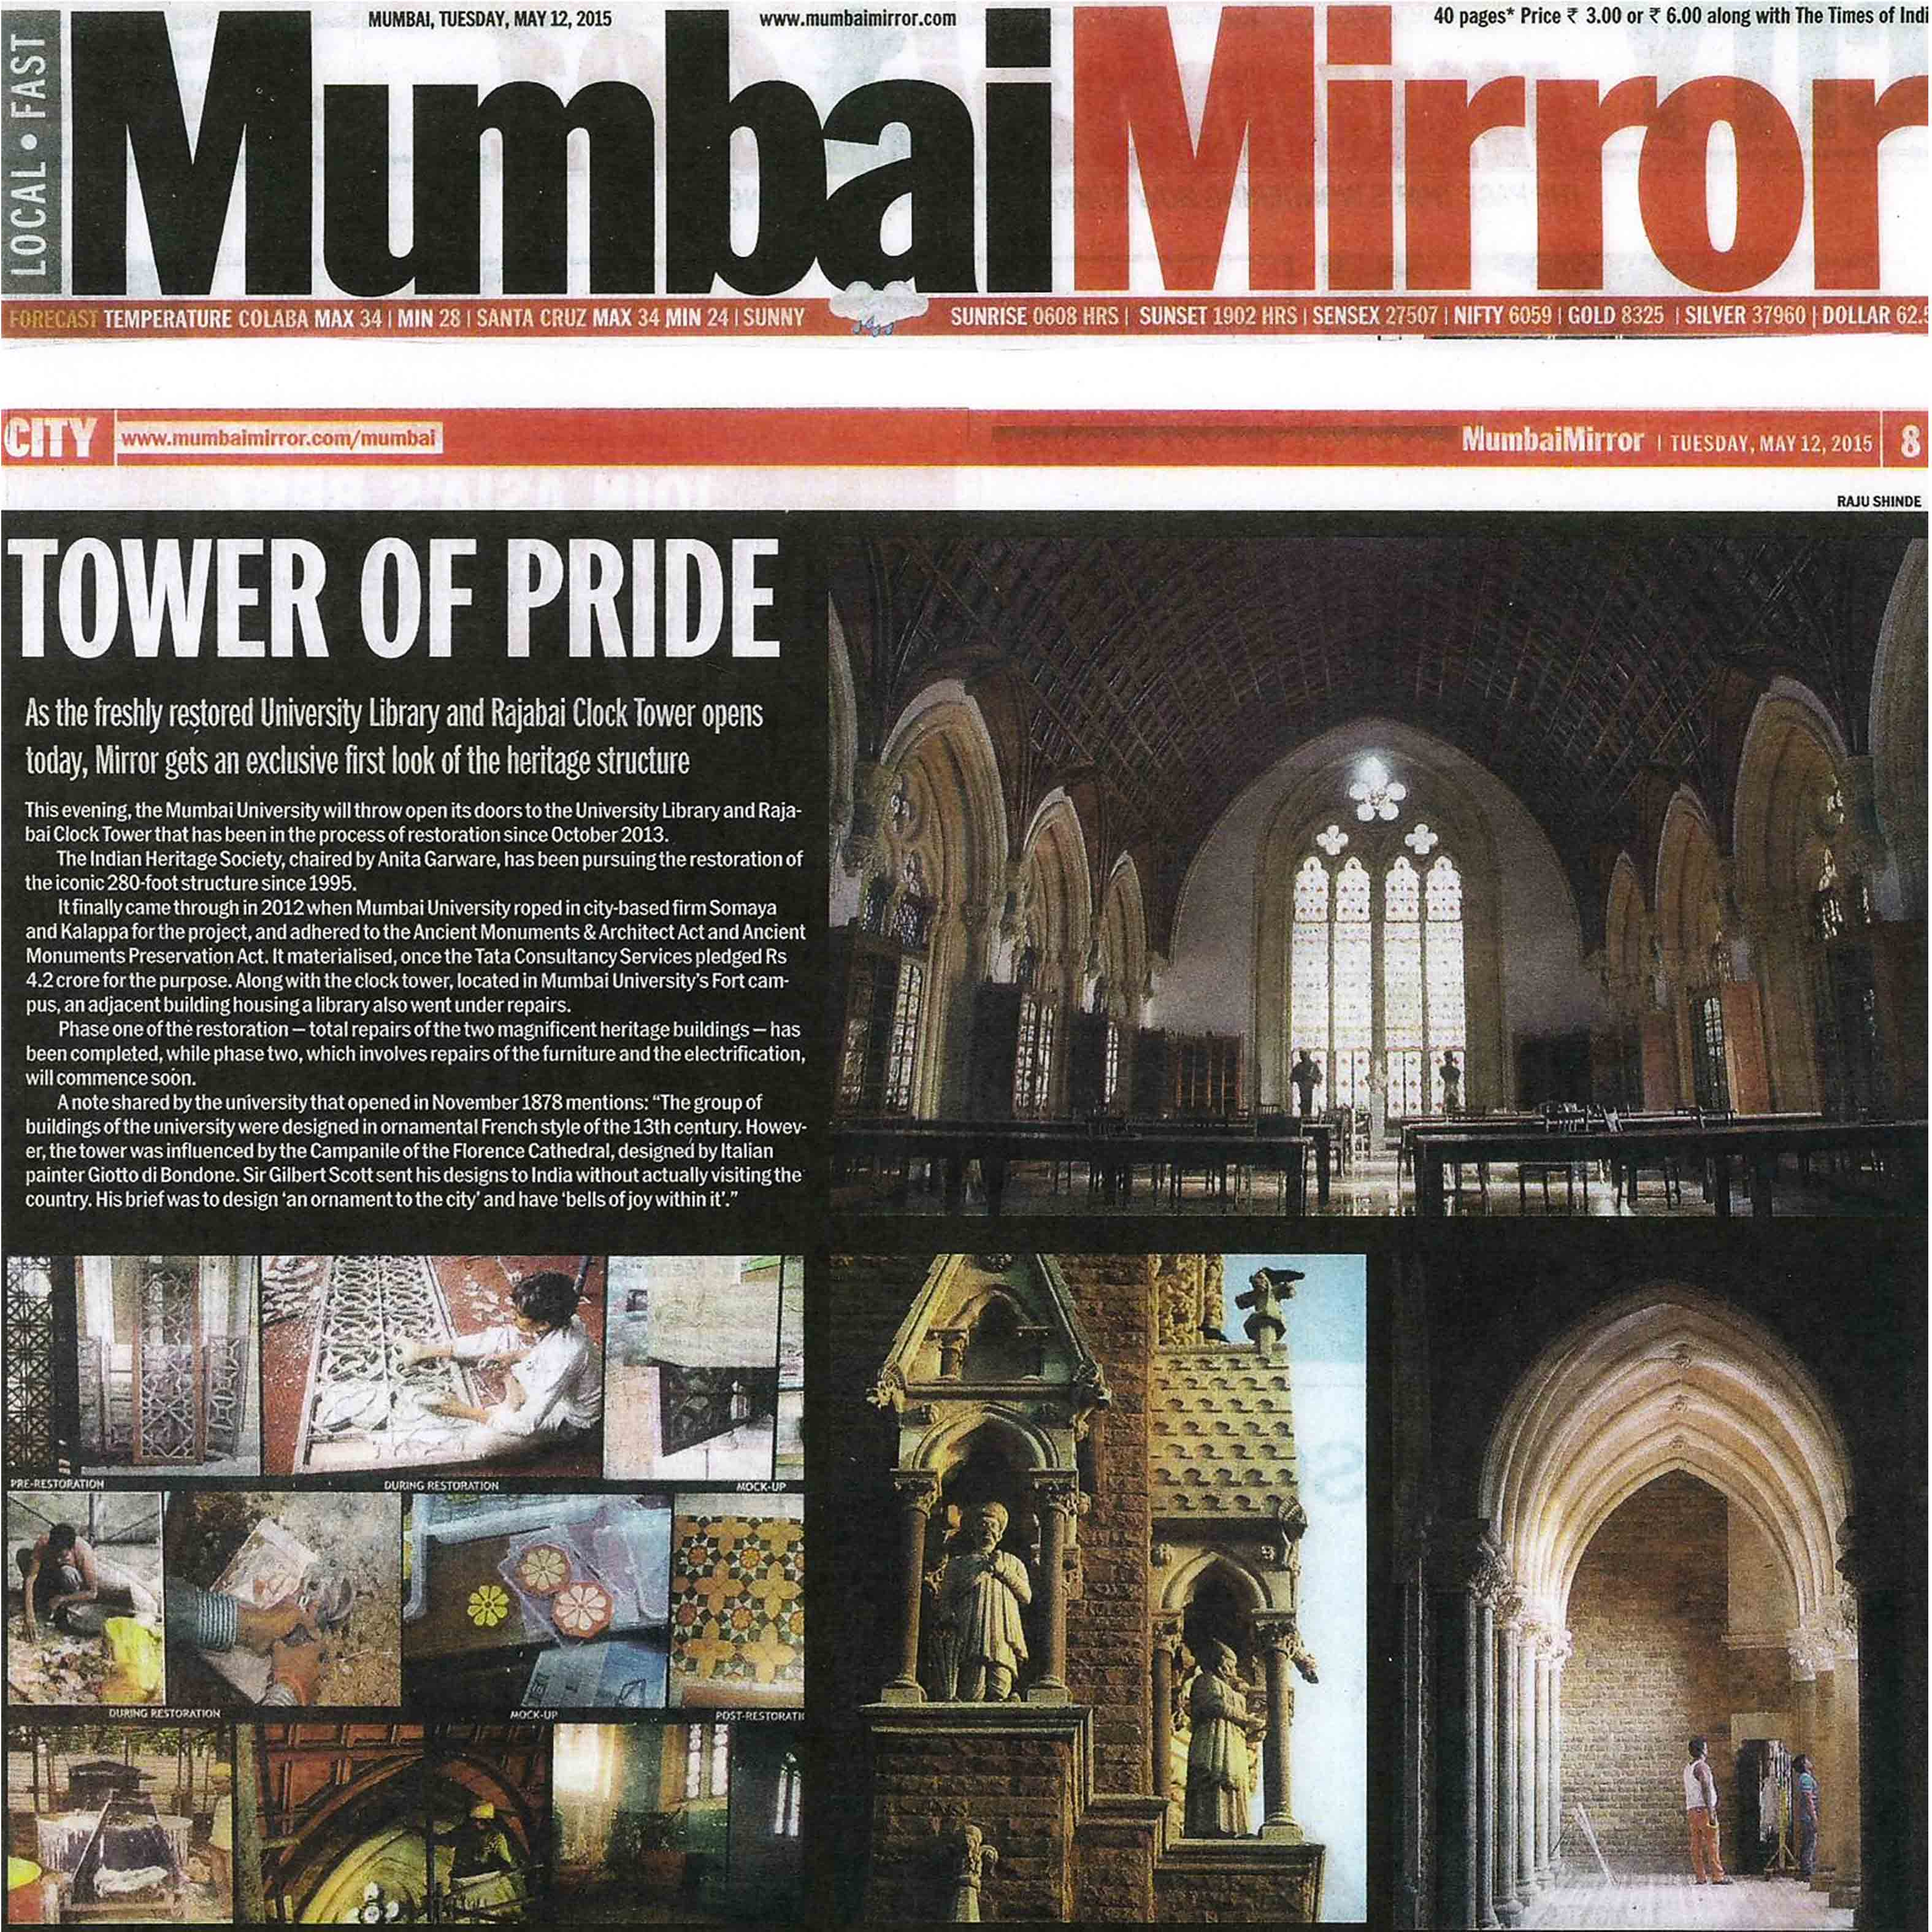 Mumbai Mirror - Tower of Pride